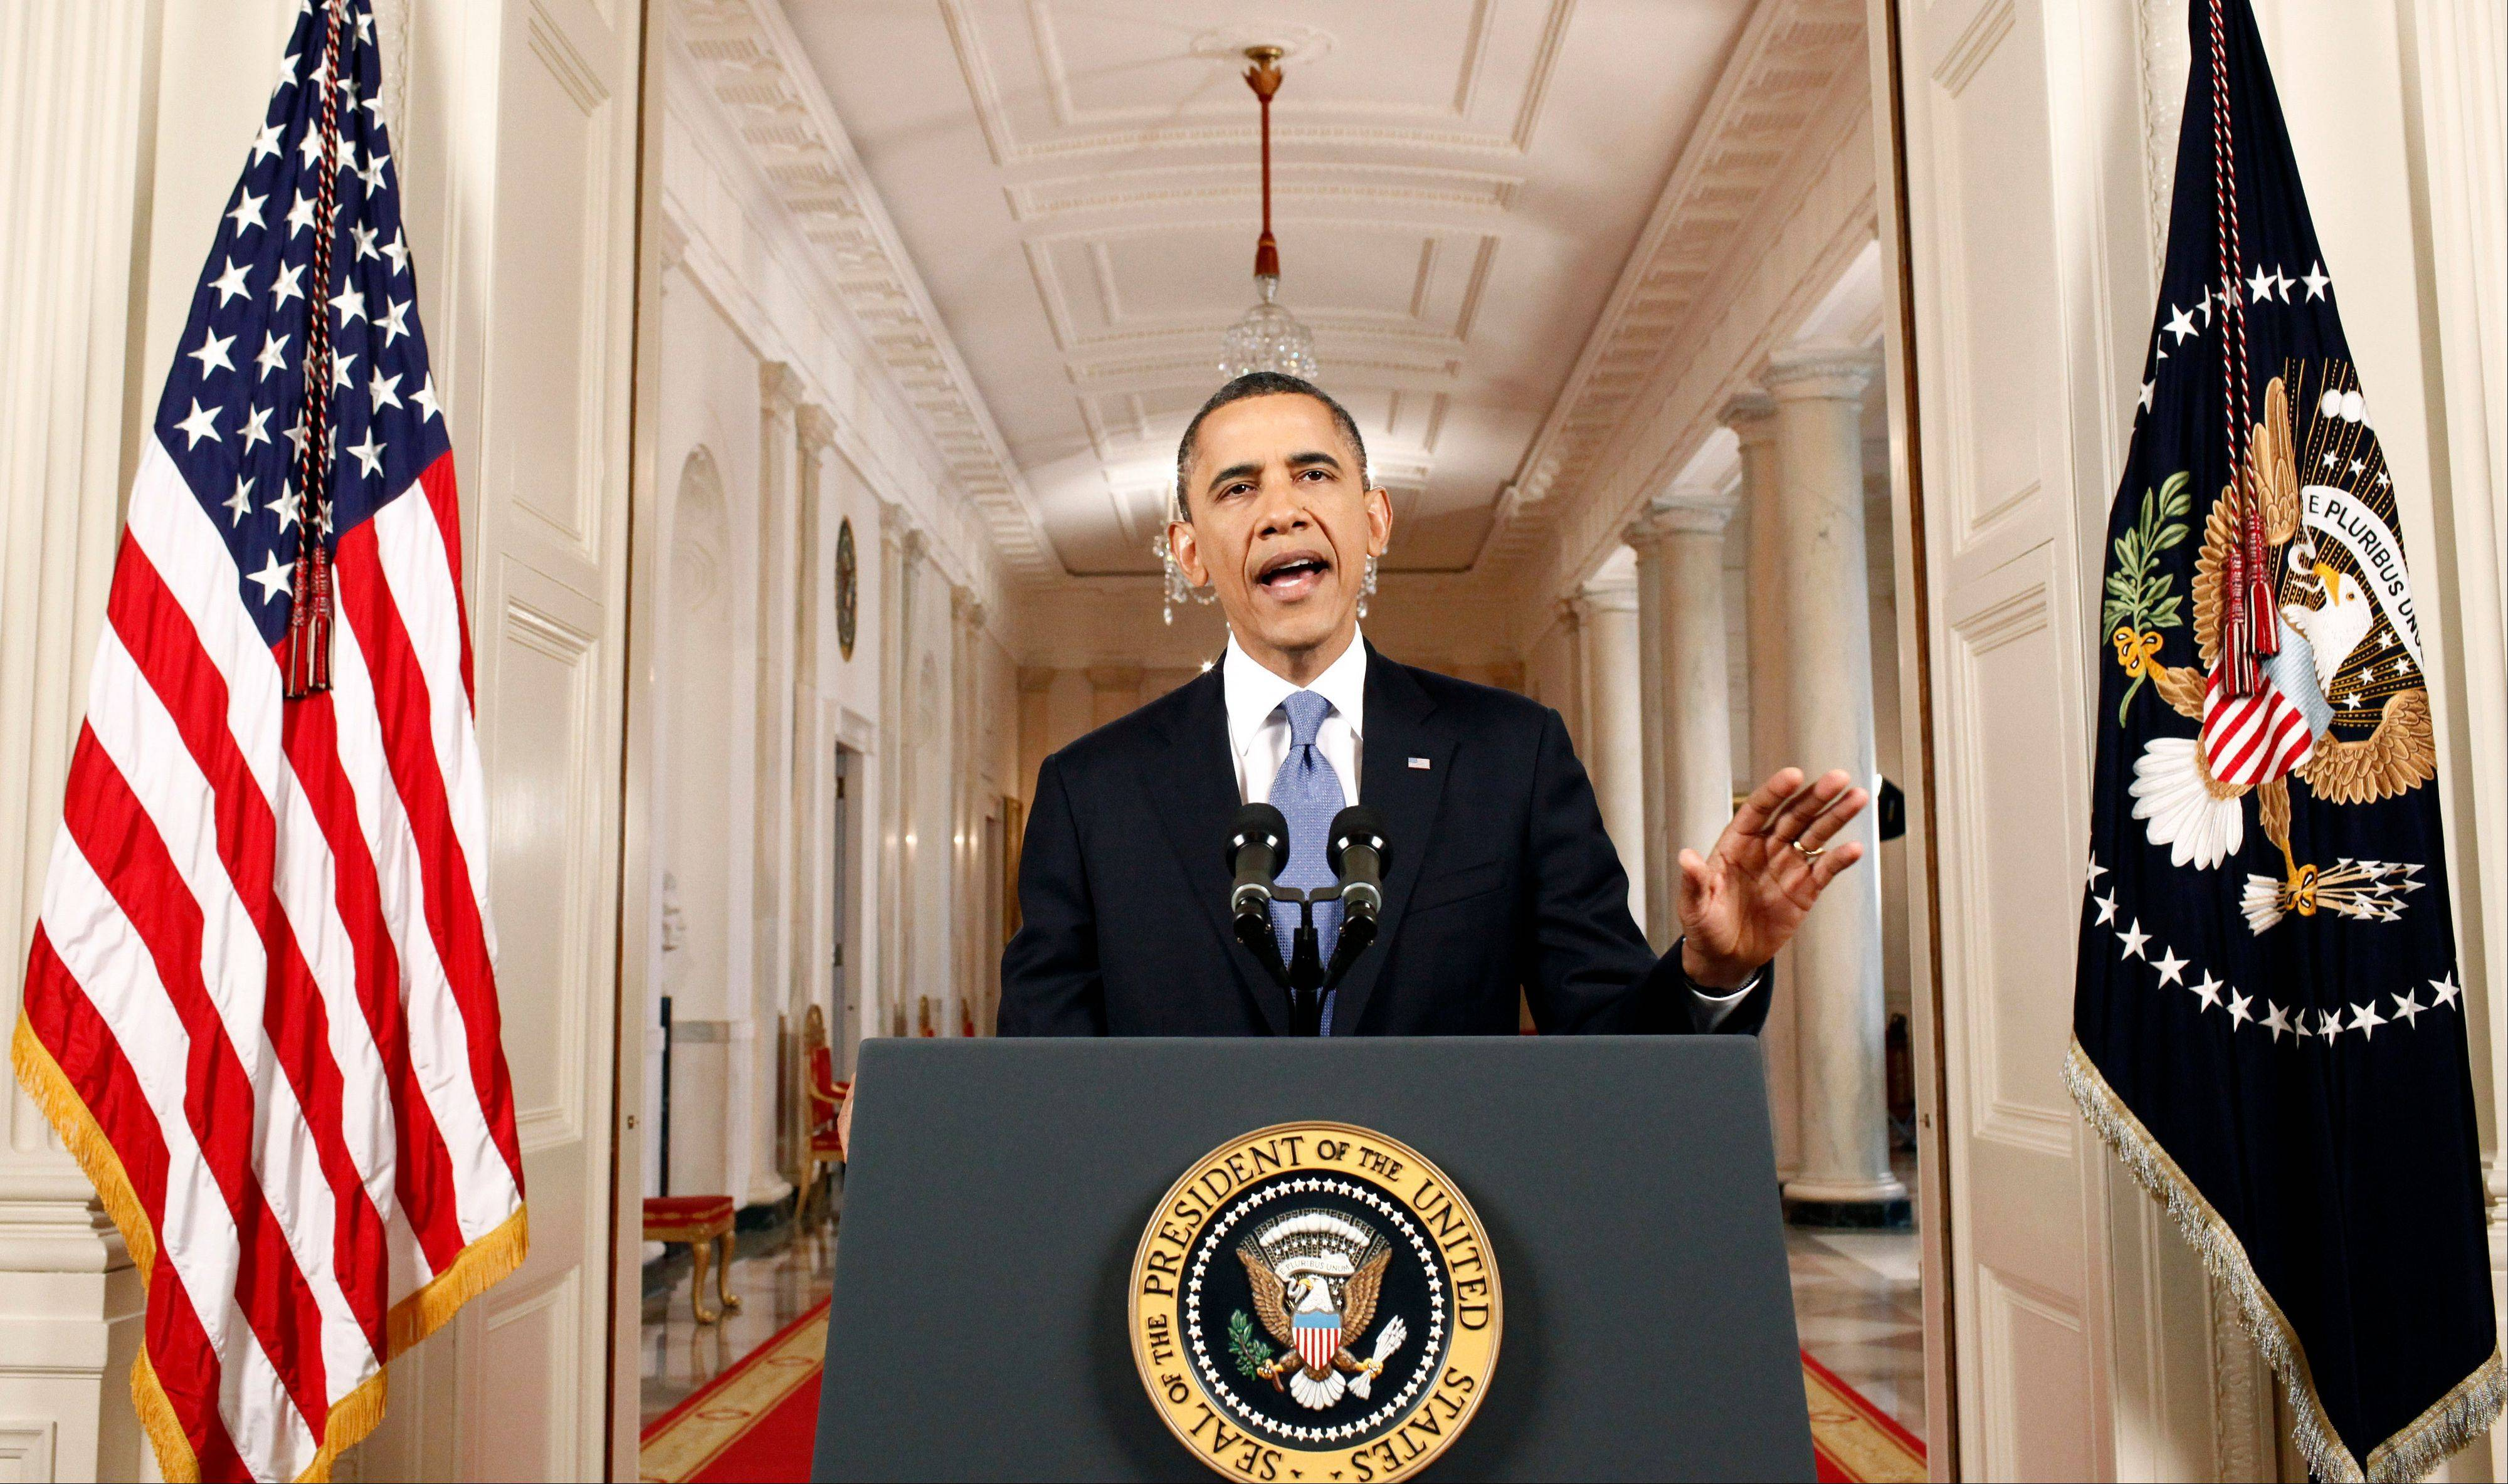 President Barack Obama speaks in the East Room of the White House in Washington, Thursday, June 28, 2012, after the Supreme Court ruled on his health care legislation.